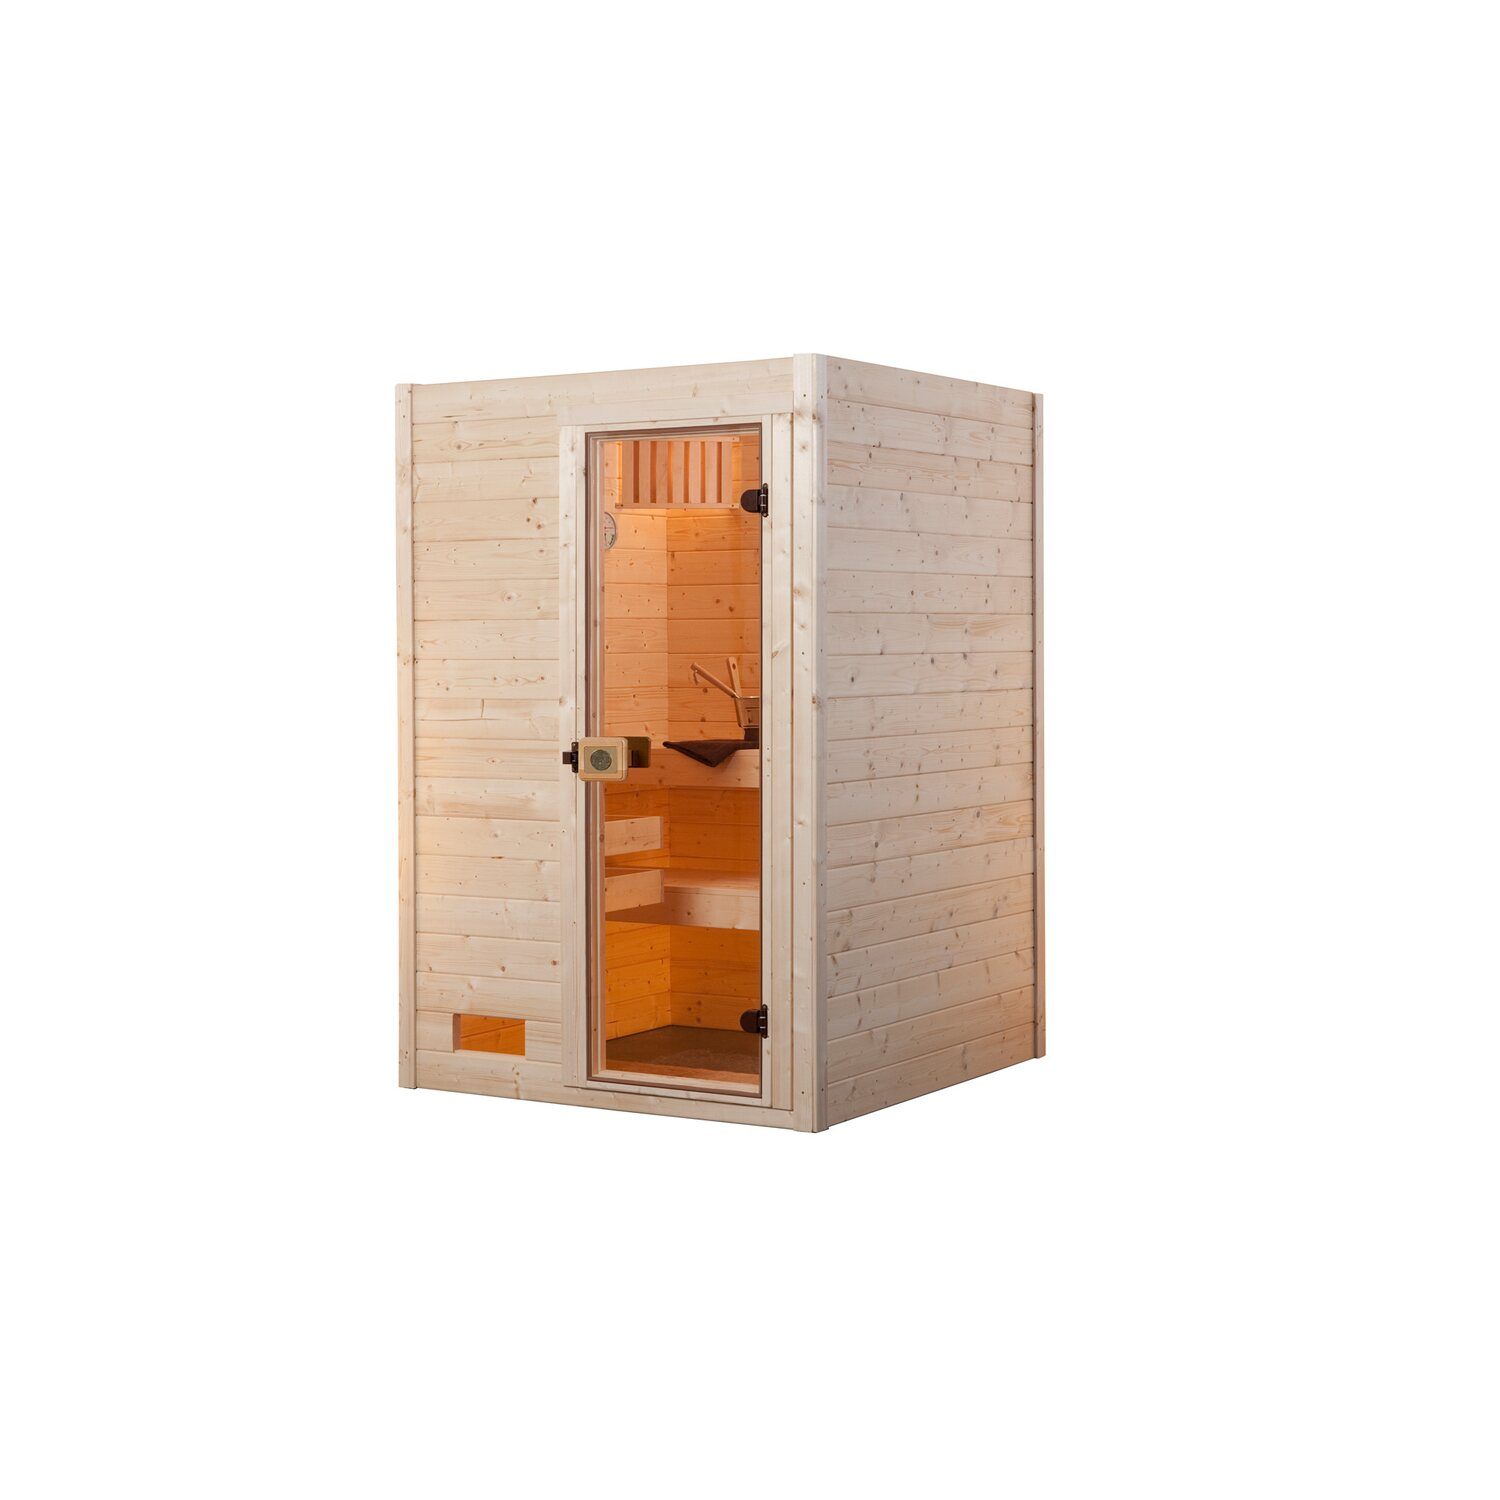 weka massivholz sauna 537 gr 1 mit glast r ohne ofen kaufen bei obi. Black Bedroom Furniture Sets. Home Design Ideas